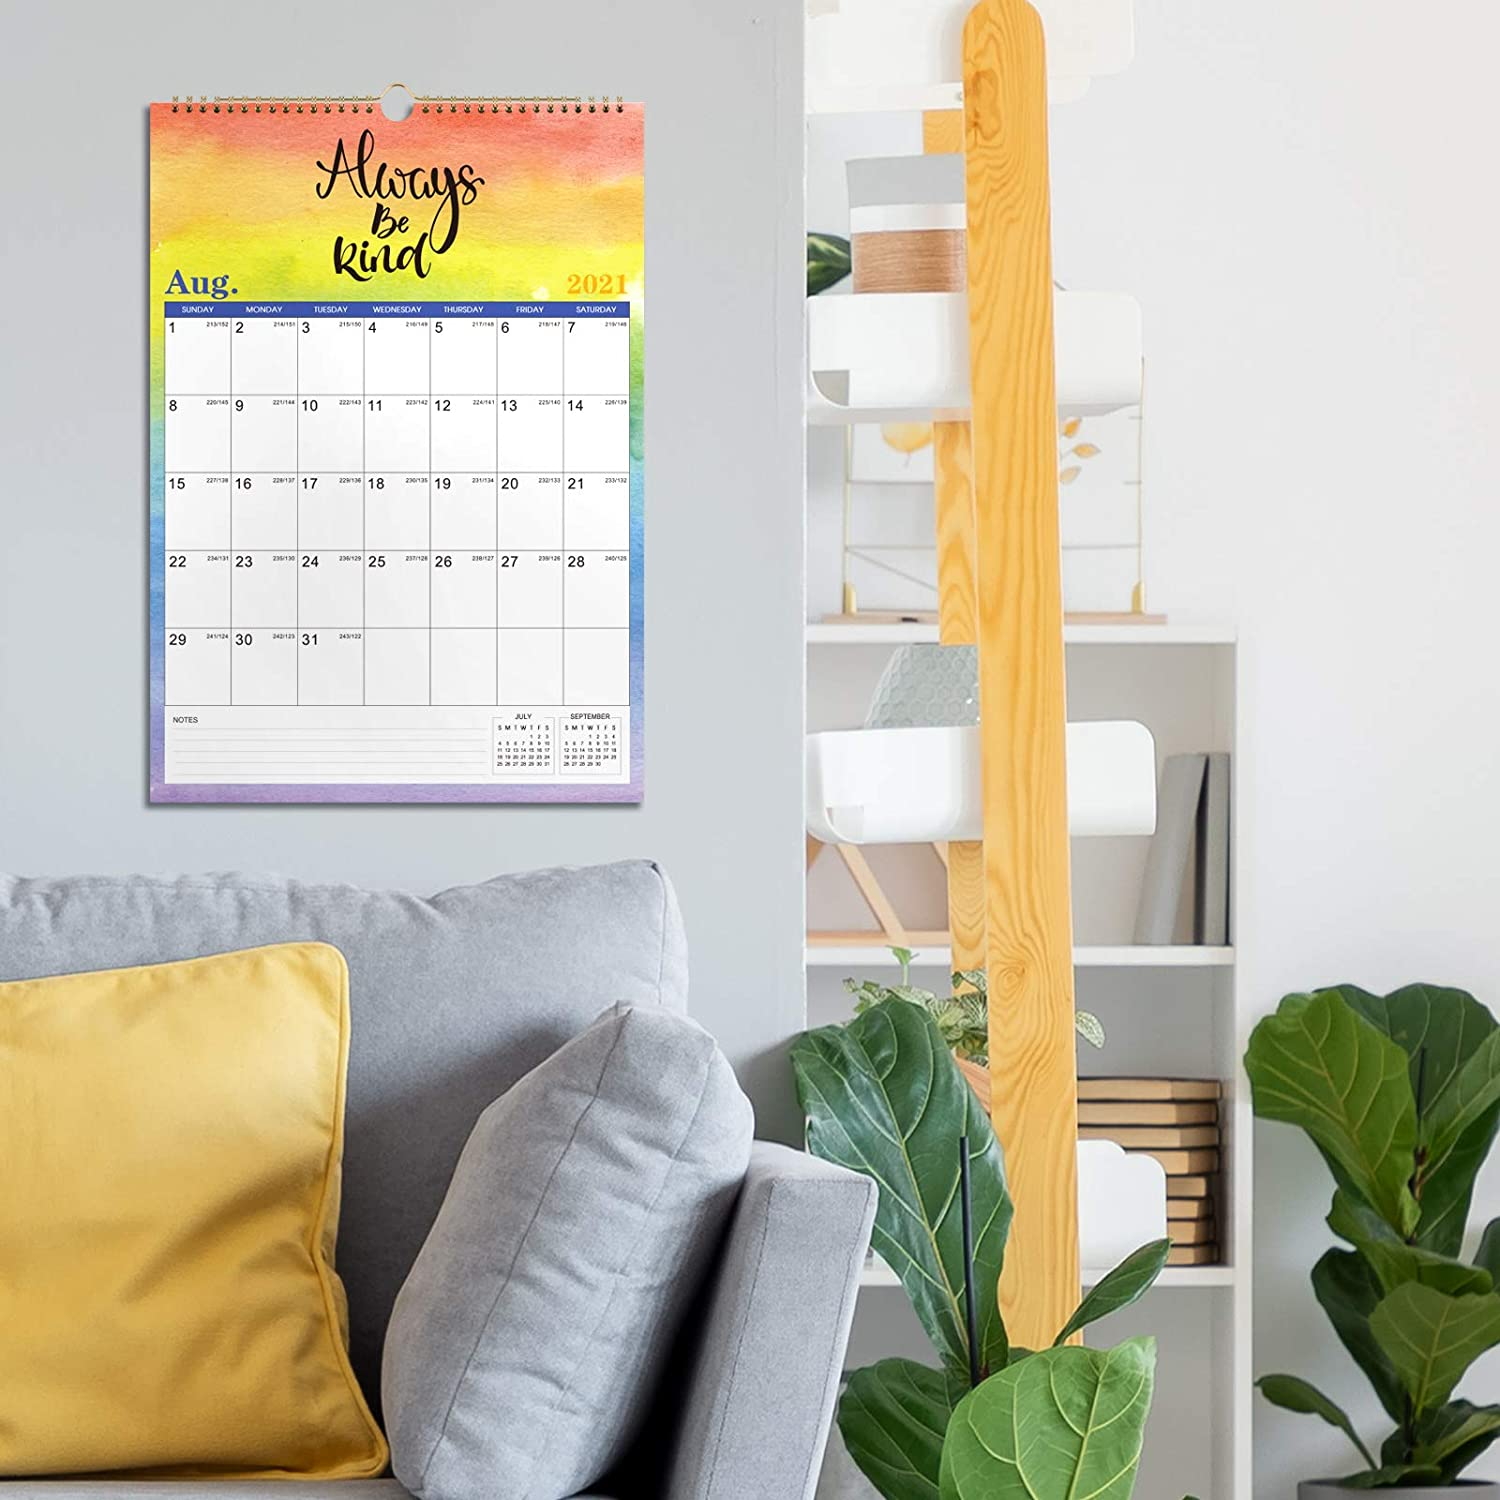 Twin-Wire Binding 12 x 17 Jan 2021 -Dec 2021 Monthly Wall Calendar with Thick Paper Large Blocks with Julian Dates 2021 Calendar Hanging Hole